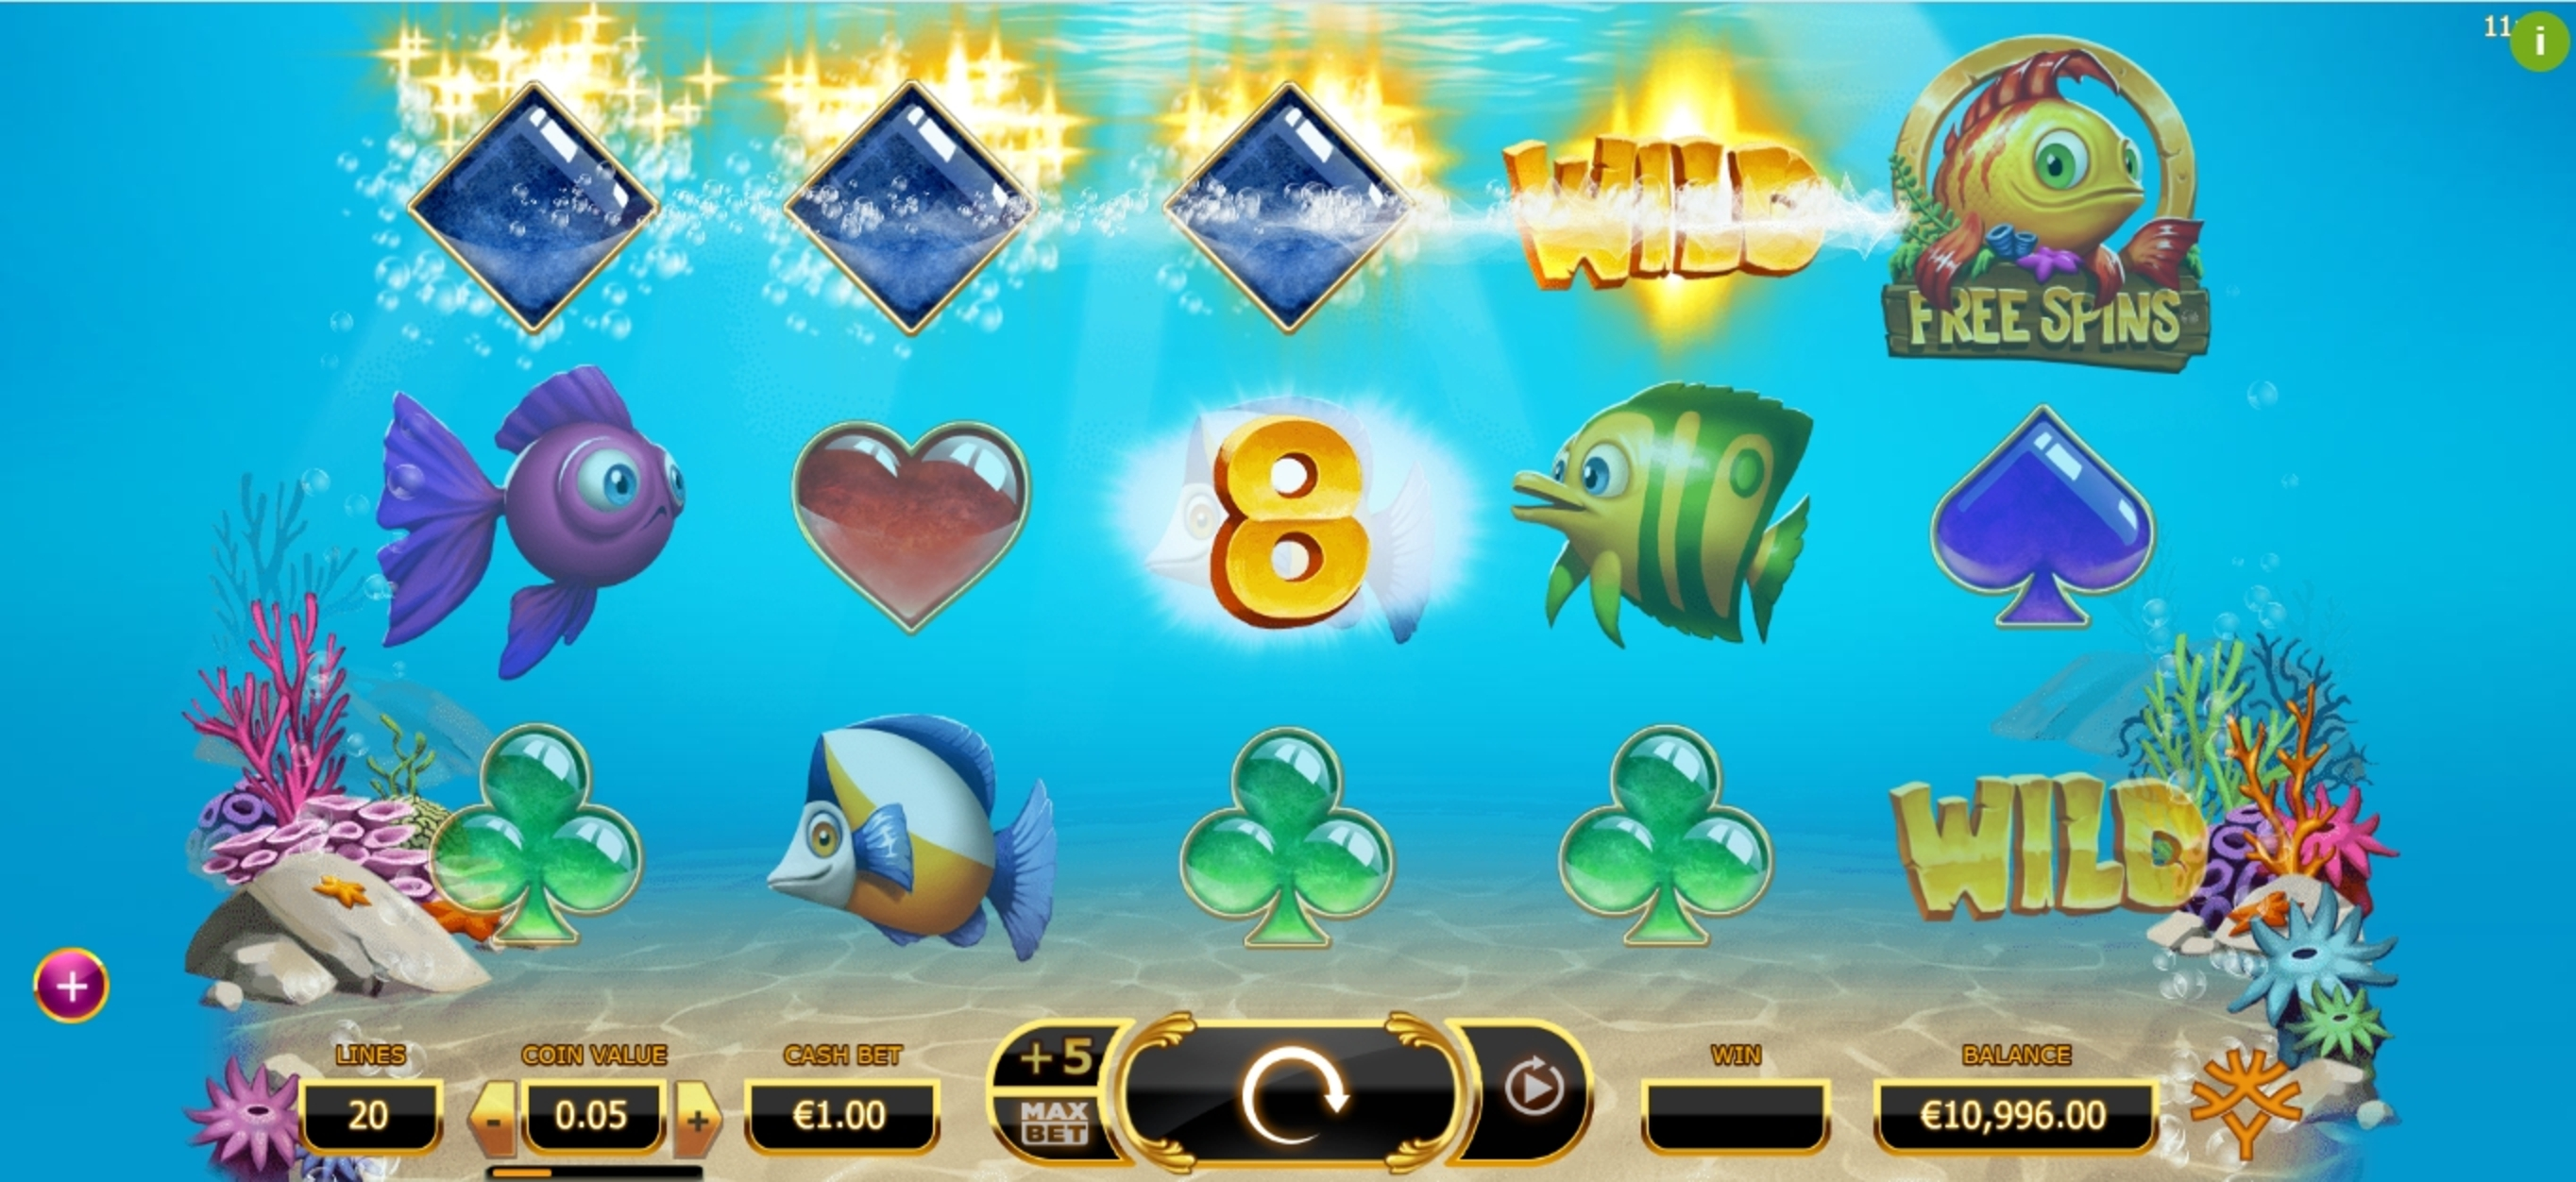 Win Money in Golden Fish Tank Free Slot Game by Yggdrasil